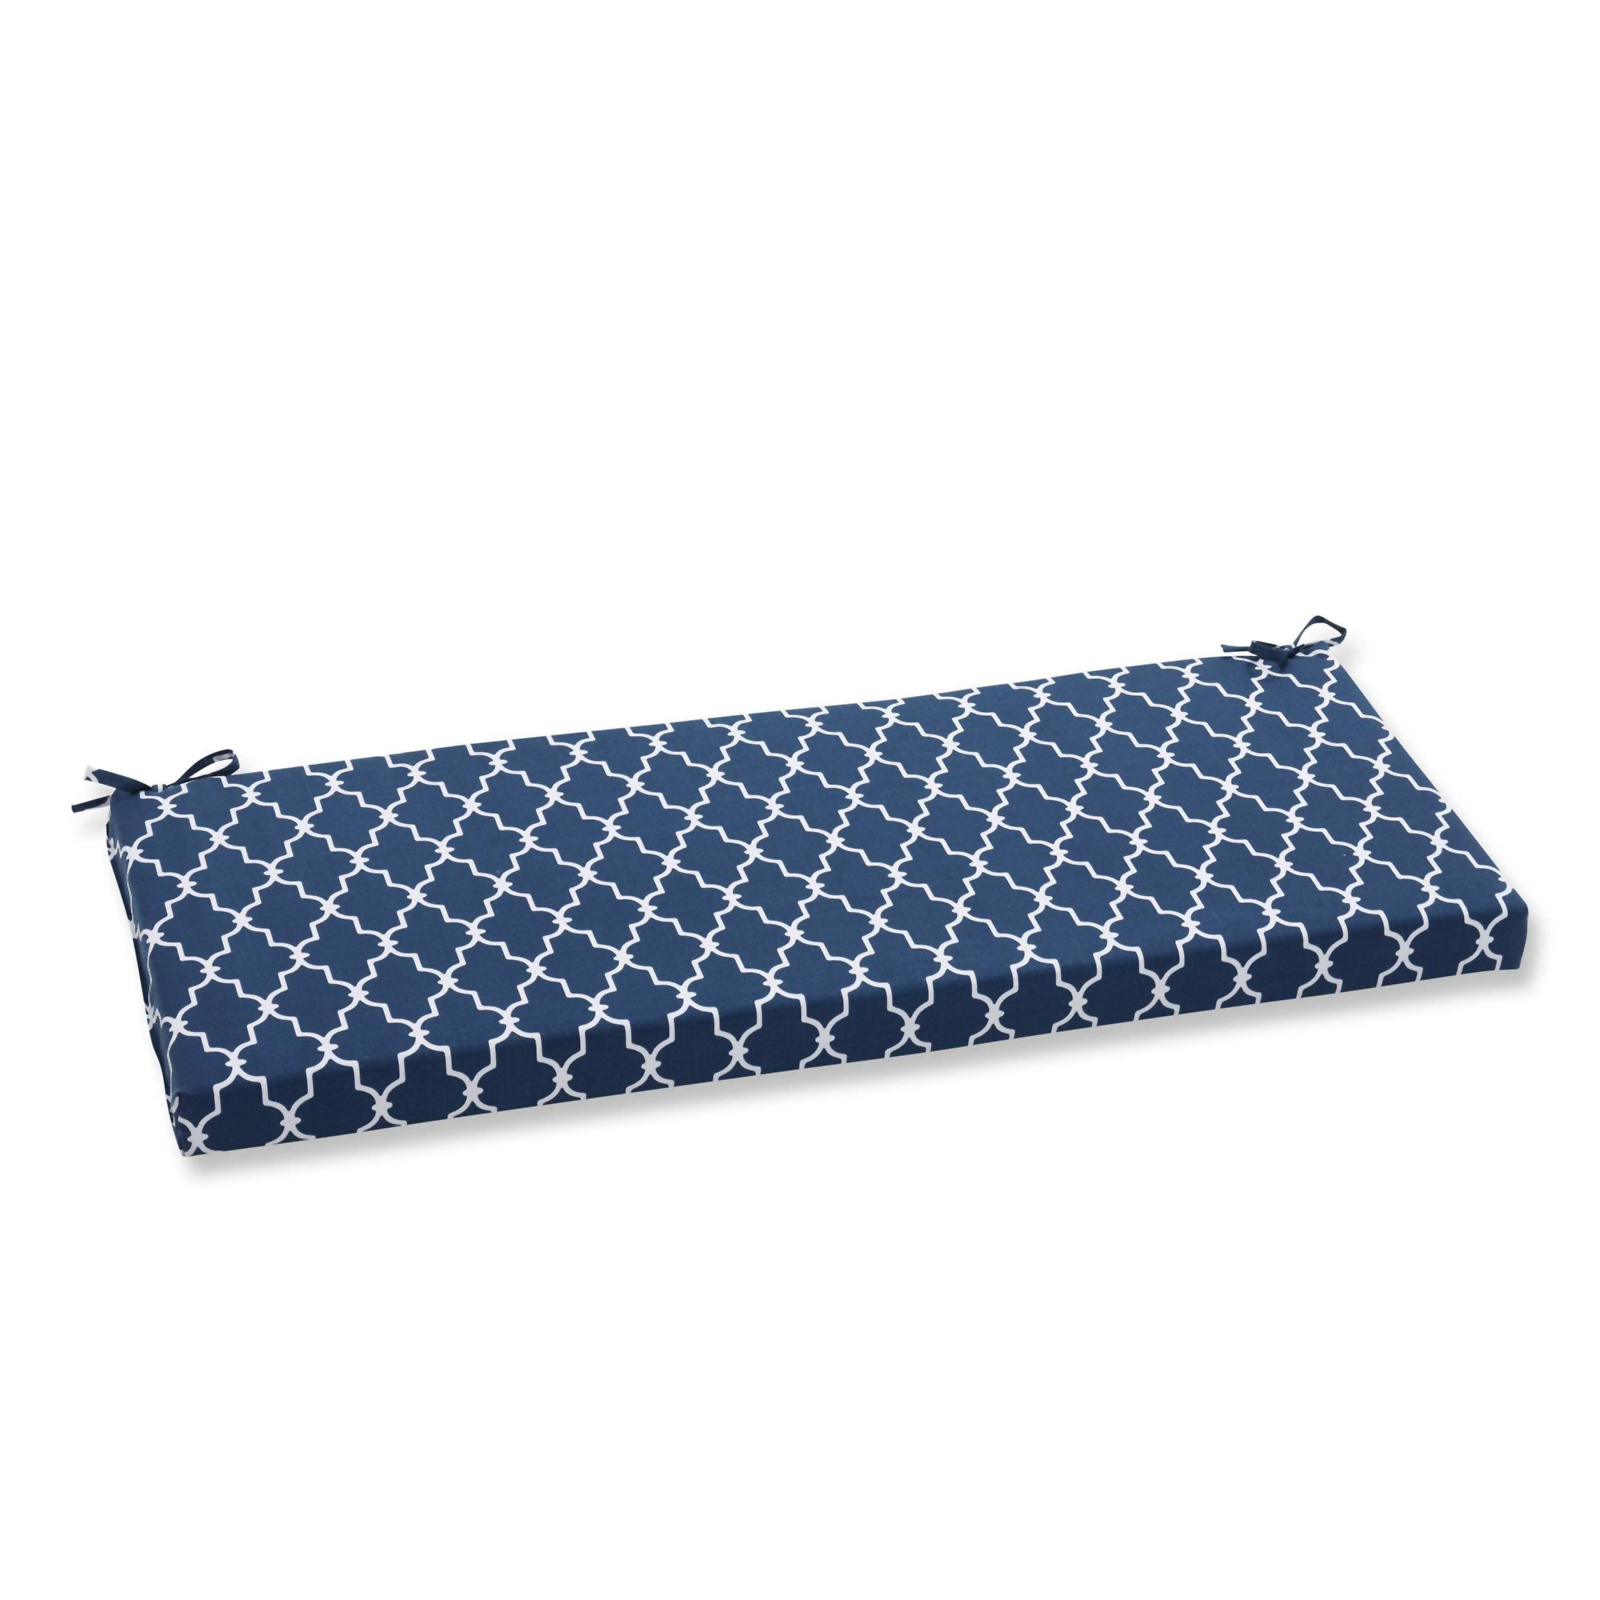 Replacement Cushions Bench Kmart